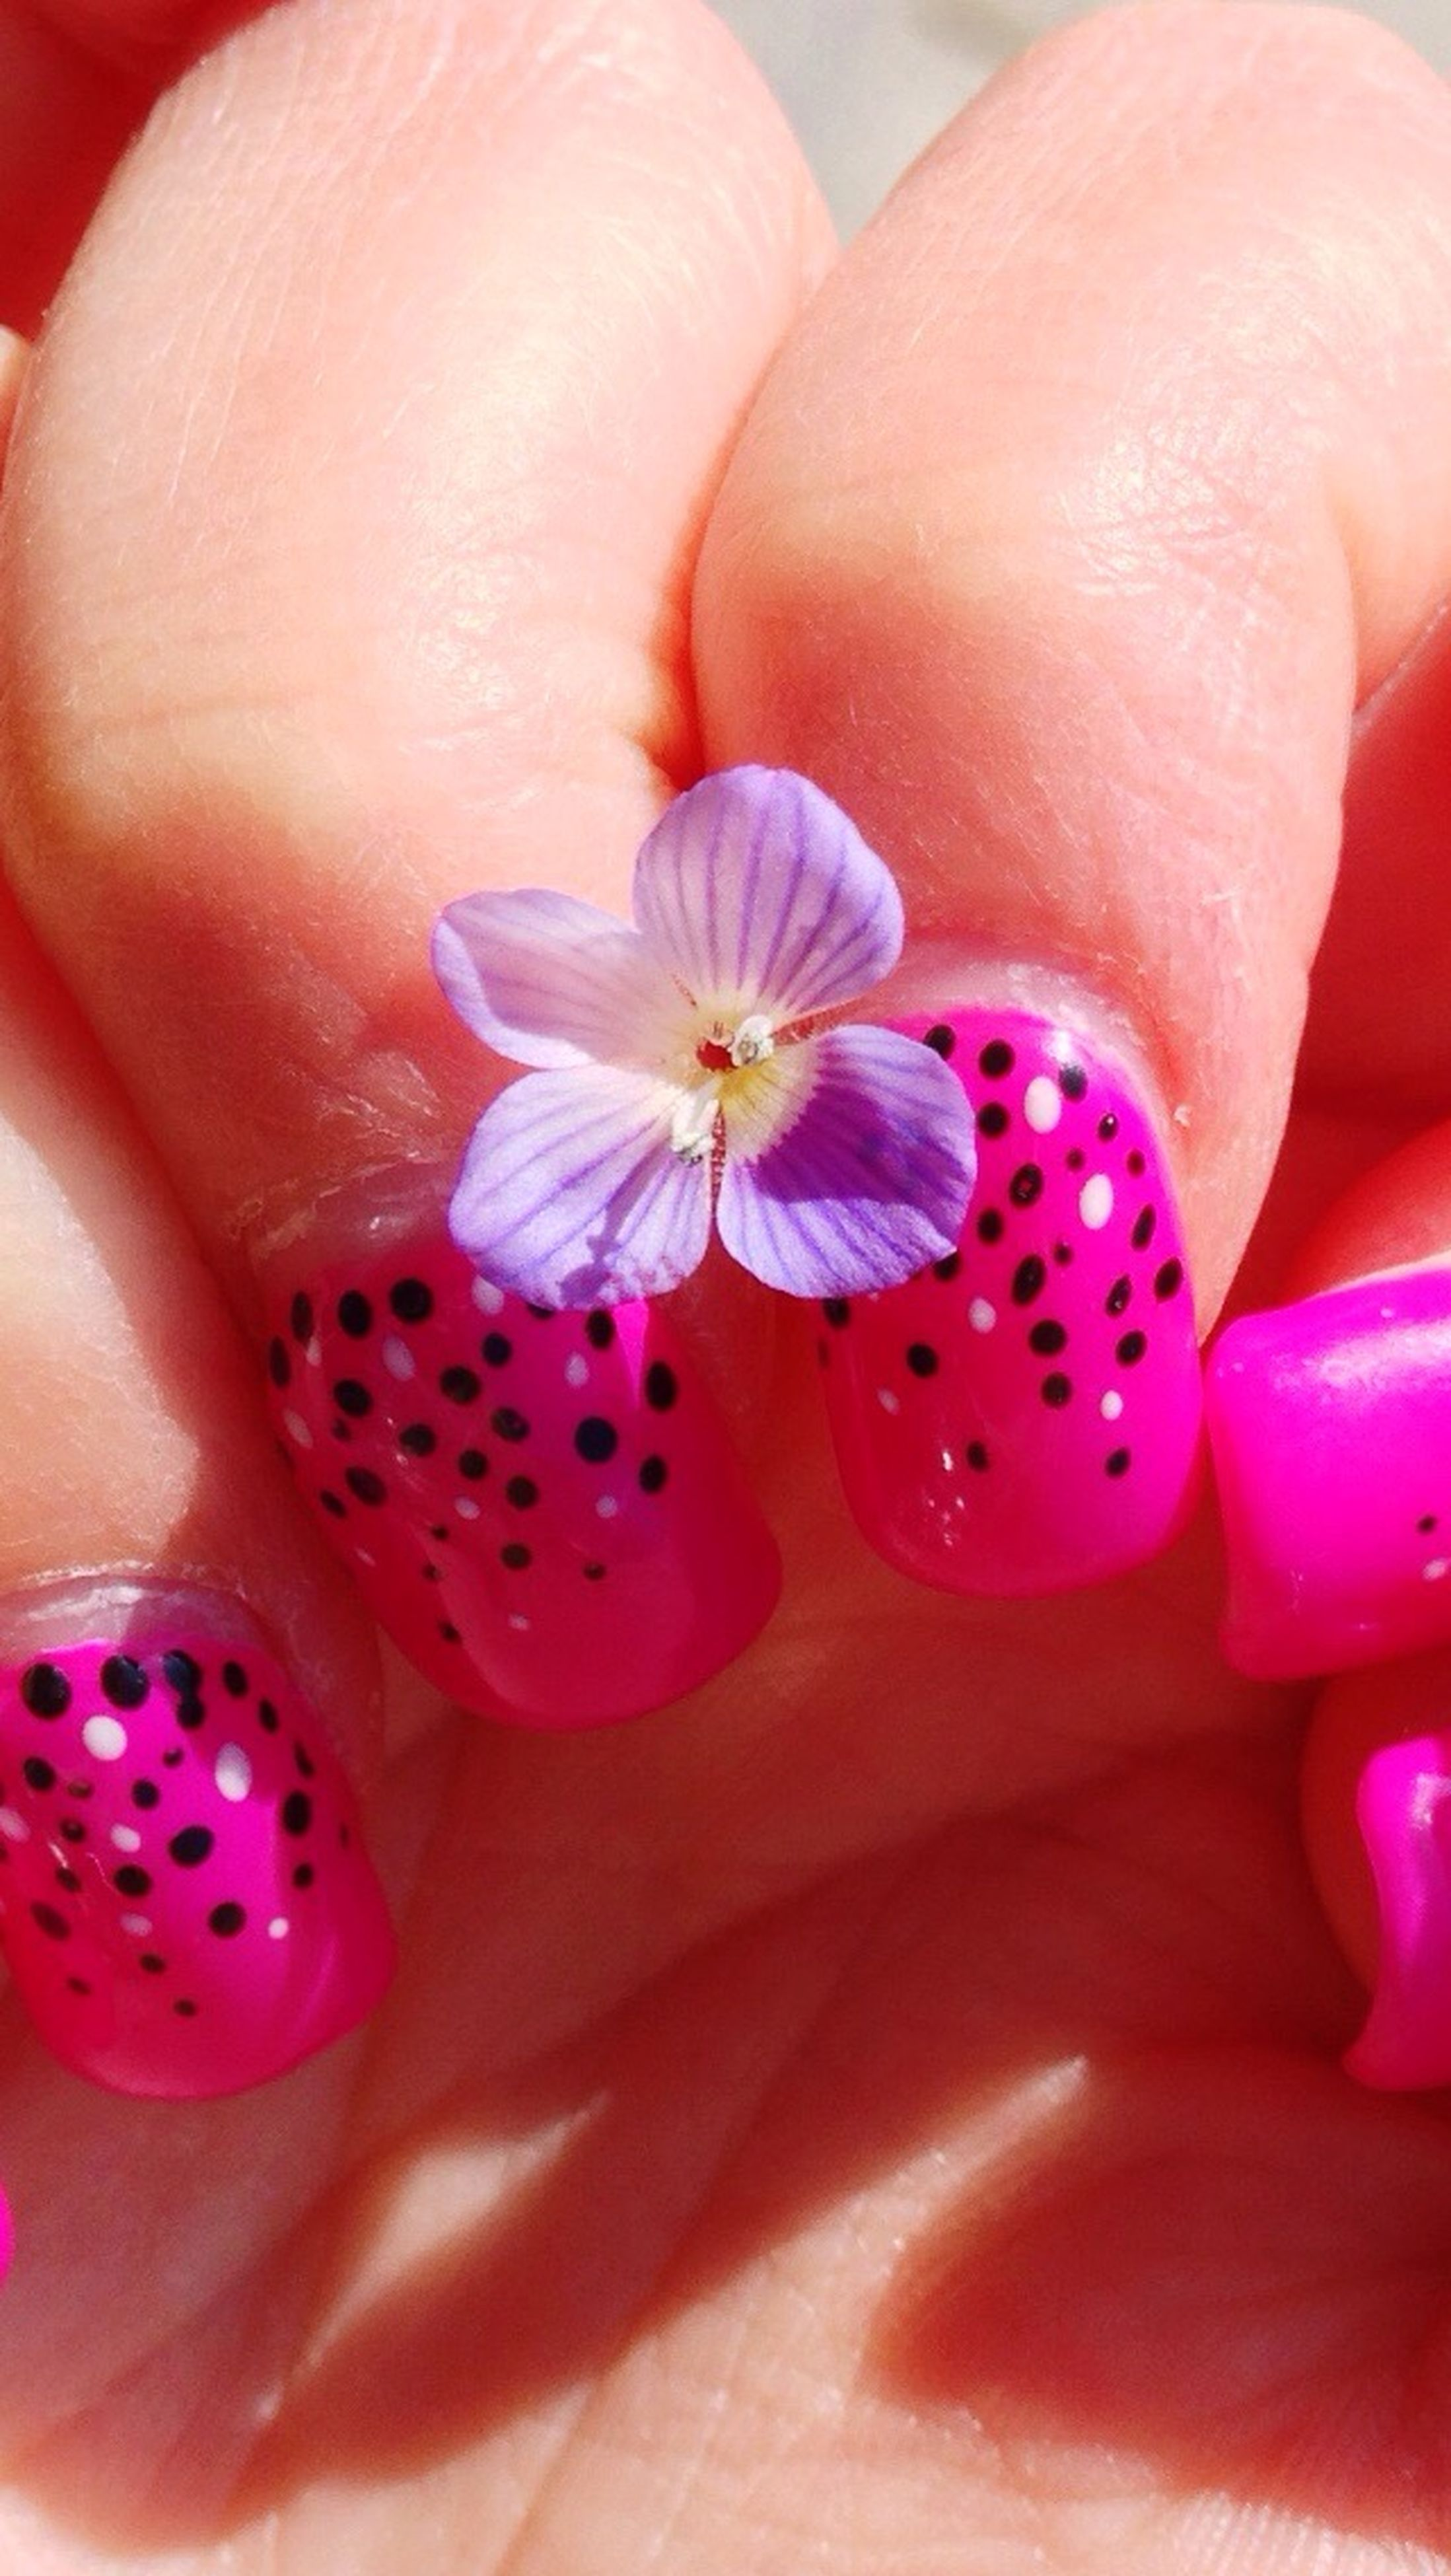 flower, person, petal, pink color, close-up, fragility, freshness, part of, indoors, high angle view, multi colored, flower head, purple, cropped, human finger, holding, pink